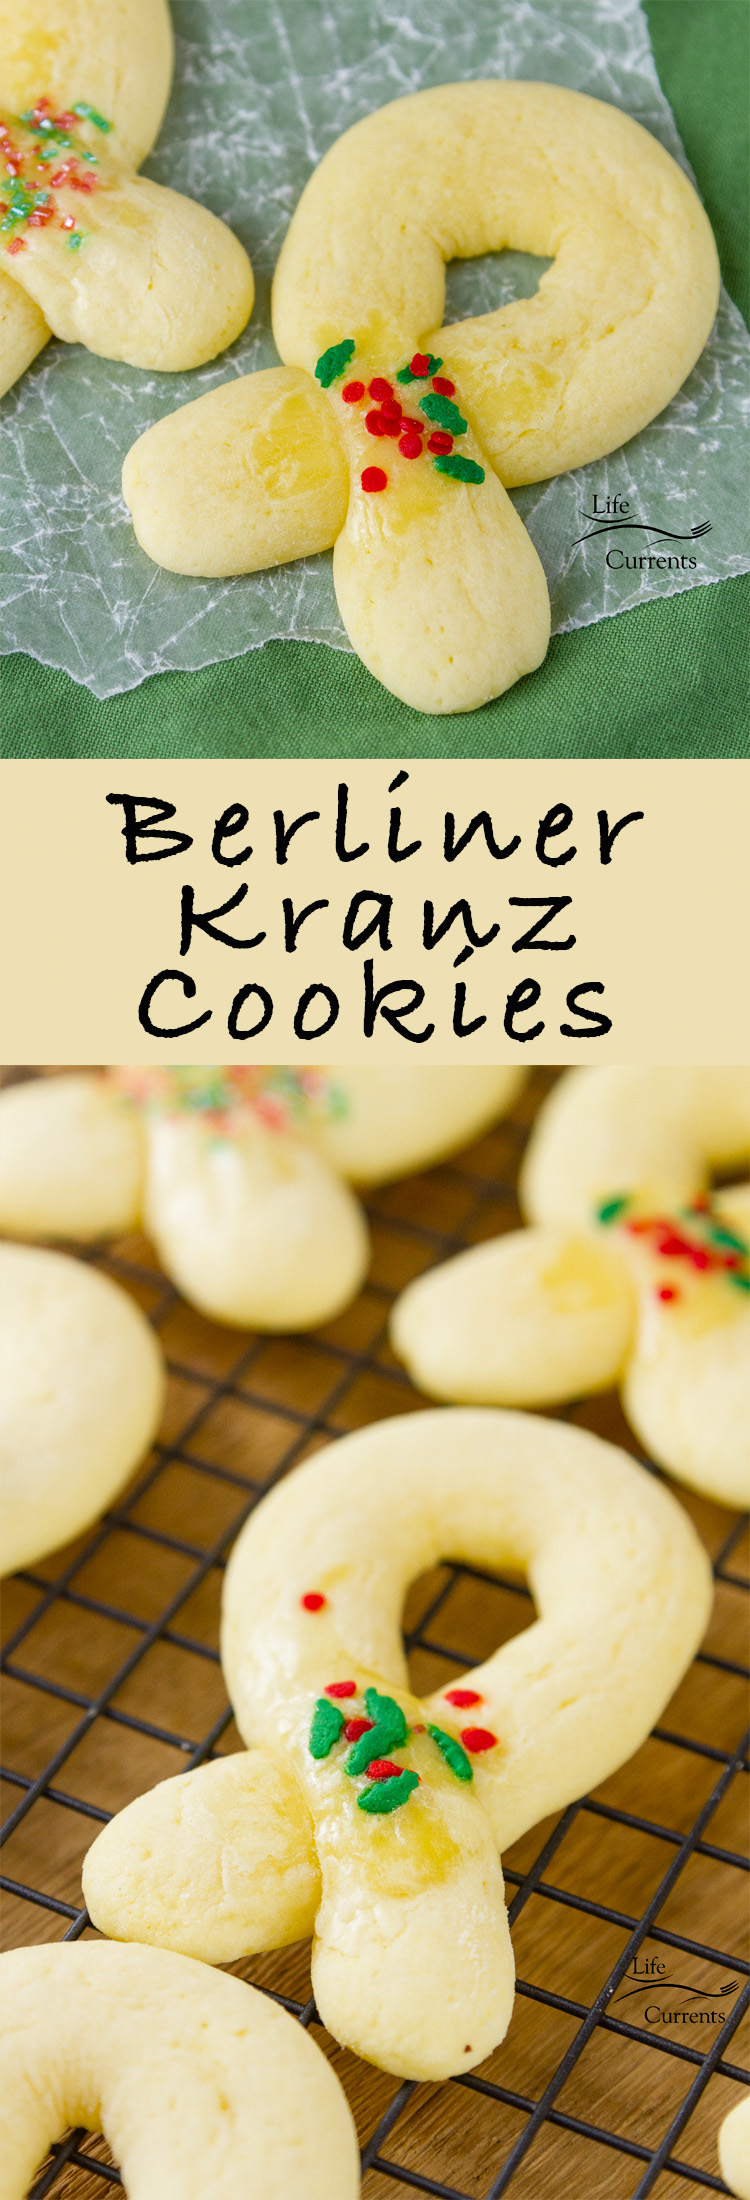 "Berliner Kranz Cookies are Norwegian Christmas Cookies which translate into ""Berlin Wreaths"" - traditionally made into wreath shapes & decorated with some little bit of red and green sugars - great for cookie exchanges"